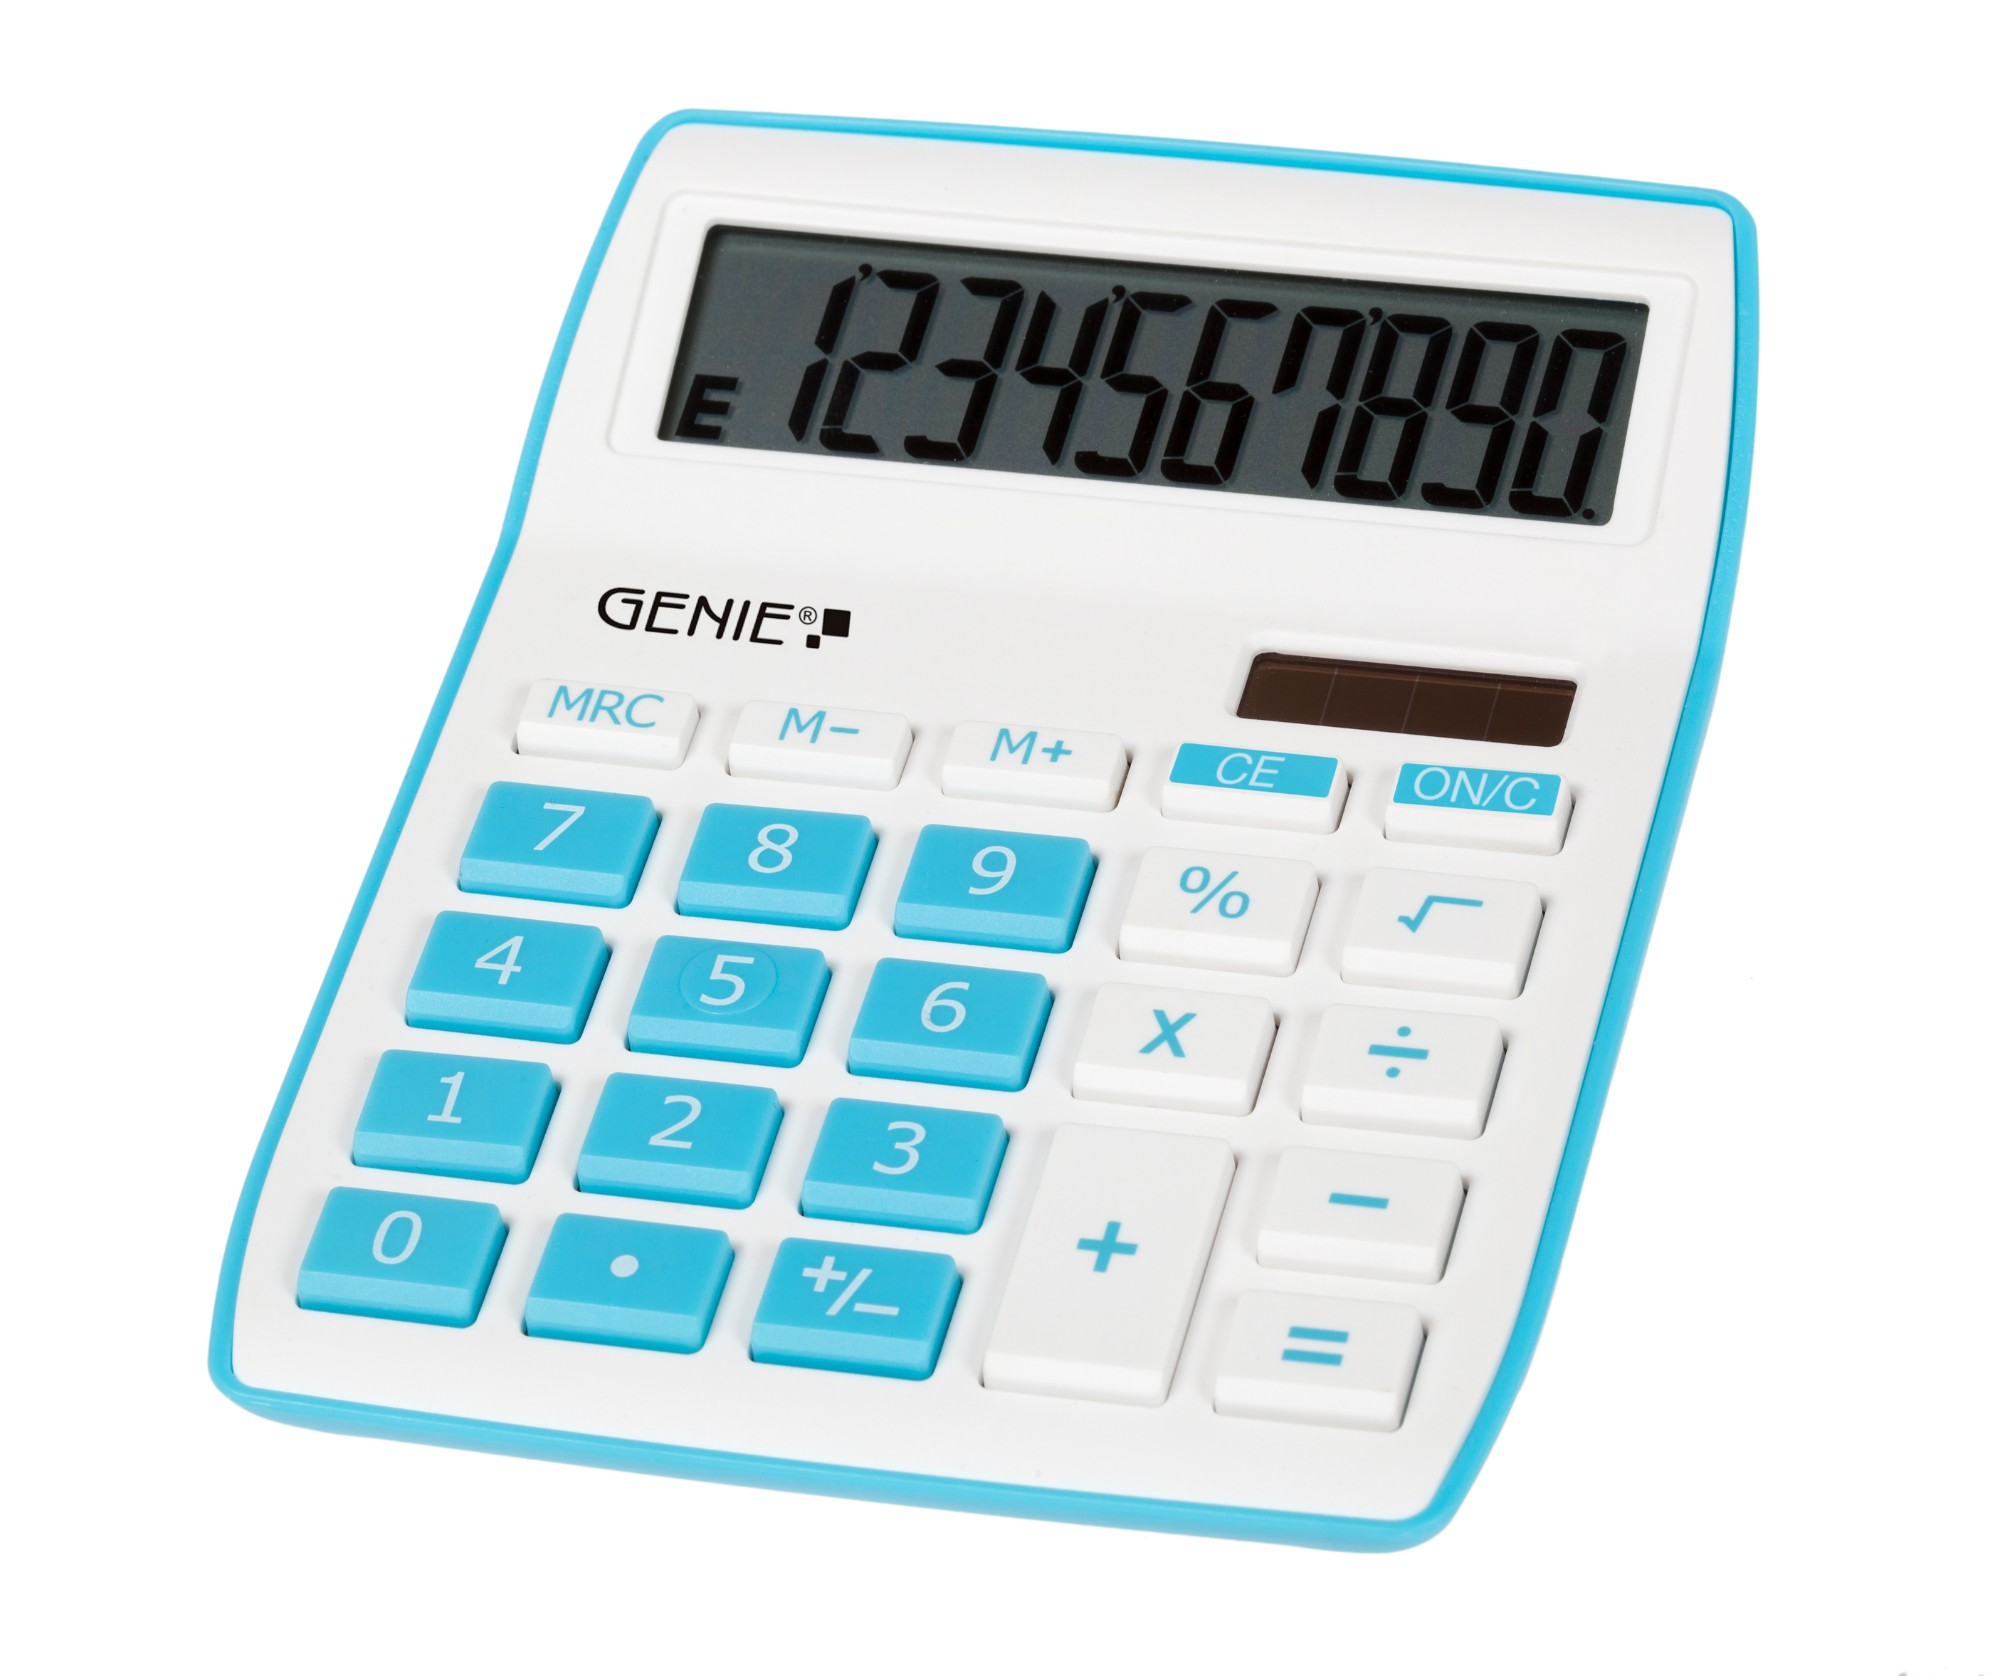 Genie 840 B calculator Desktop Display Blue, White